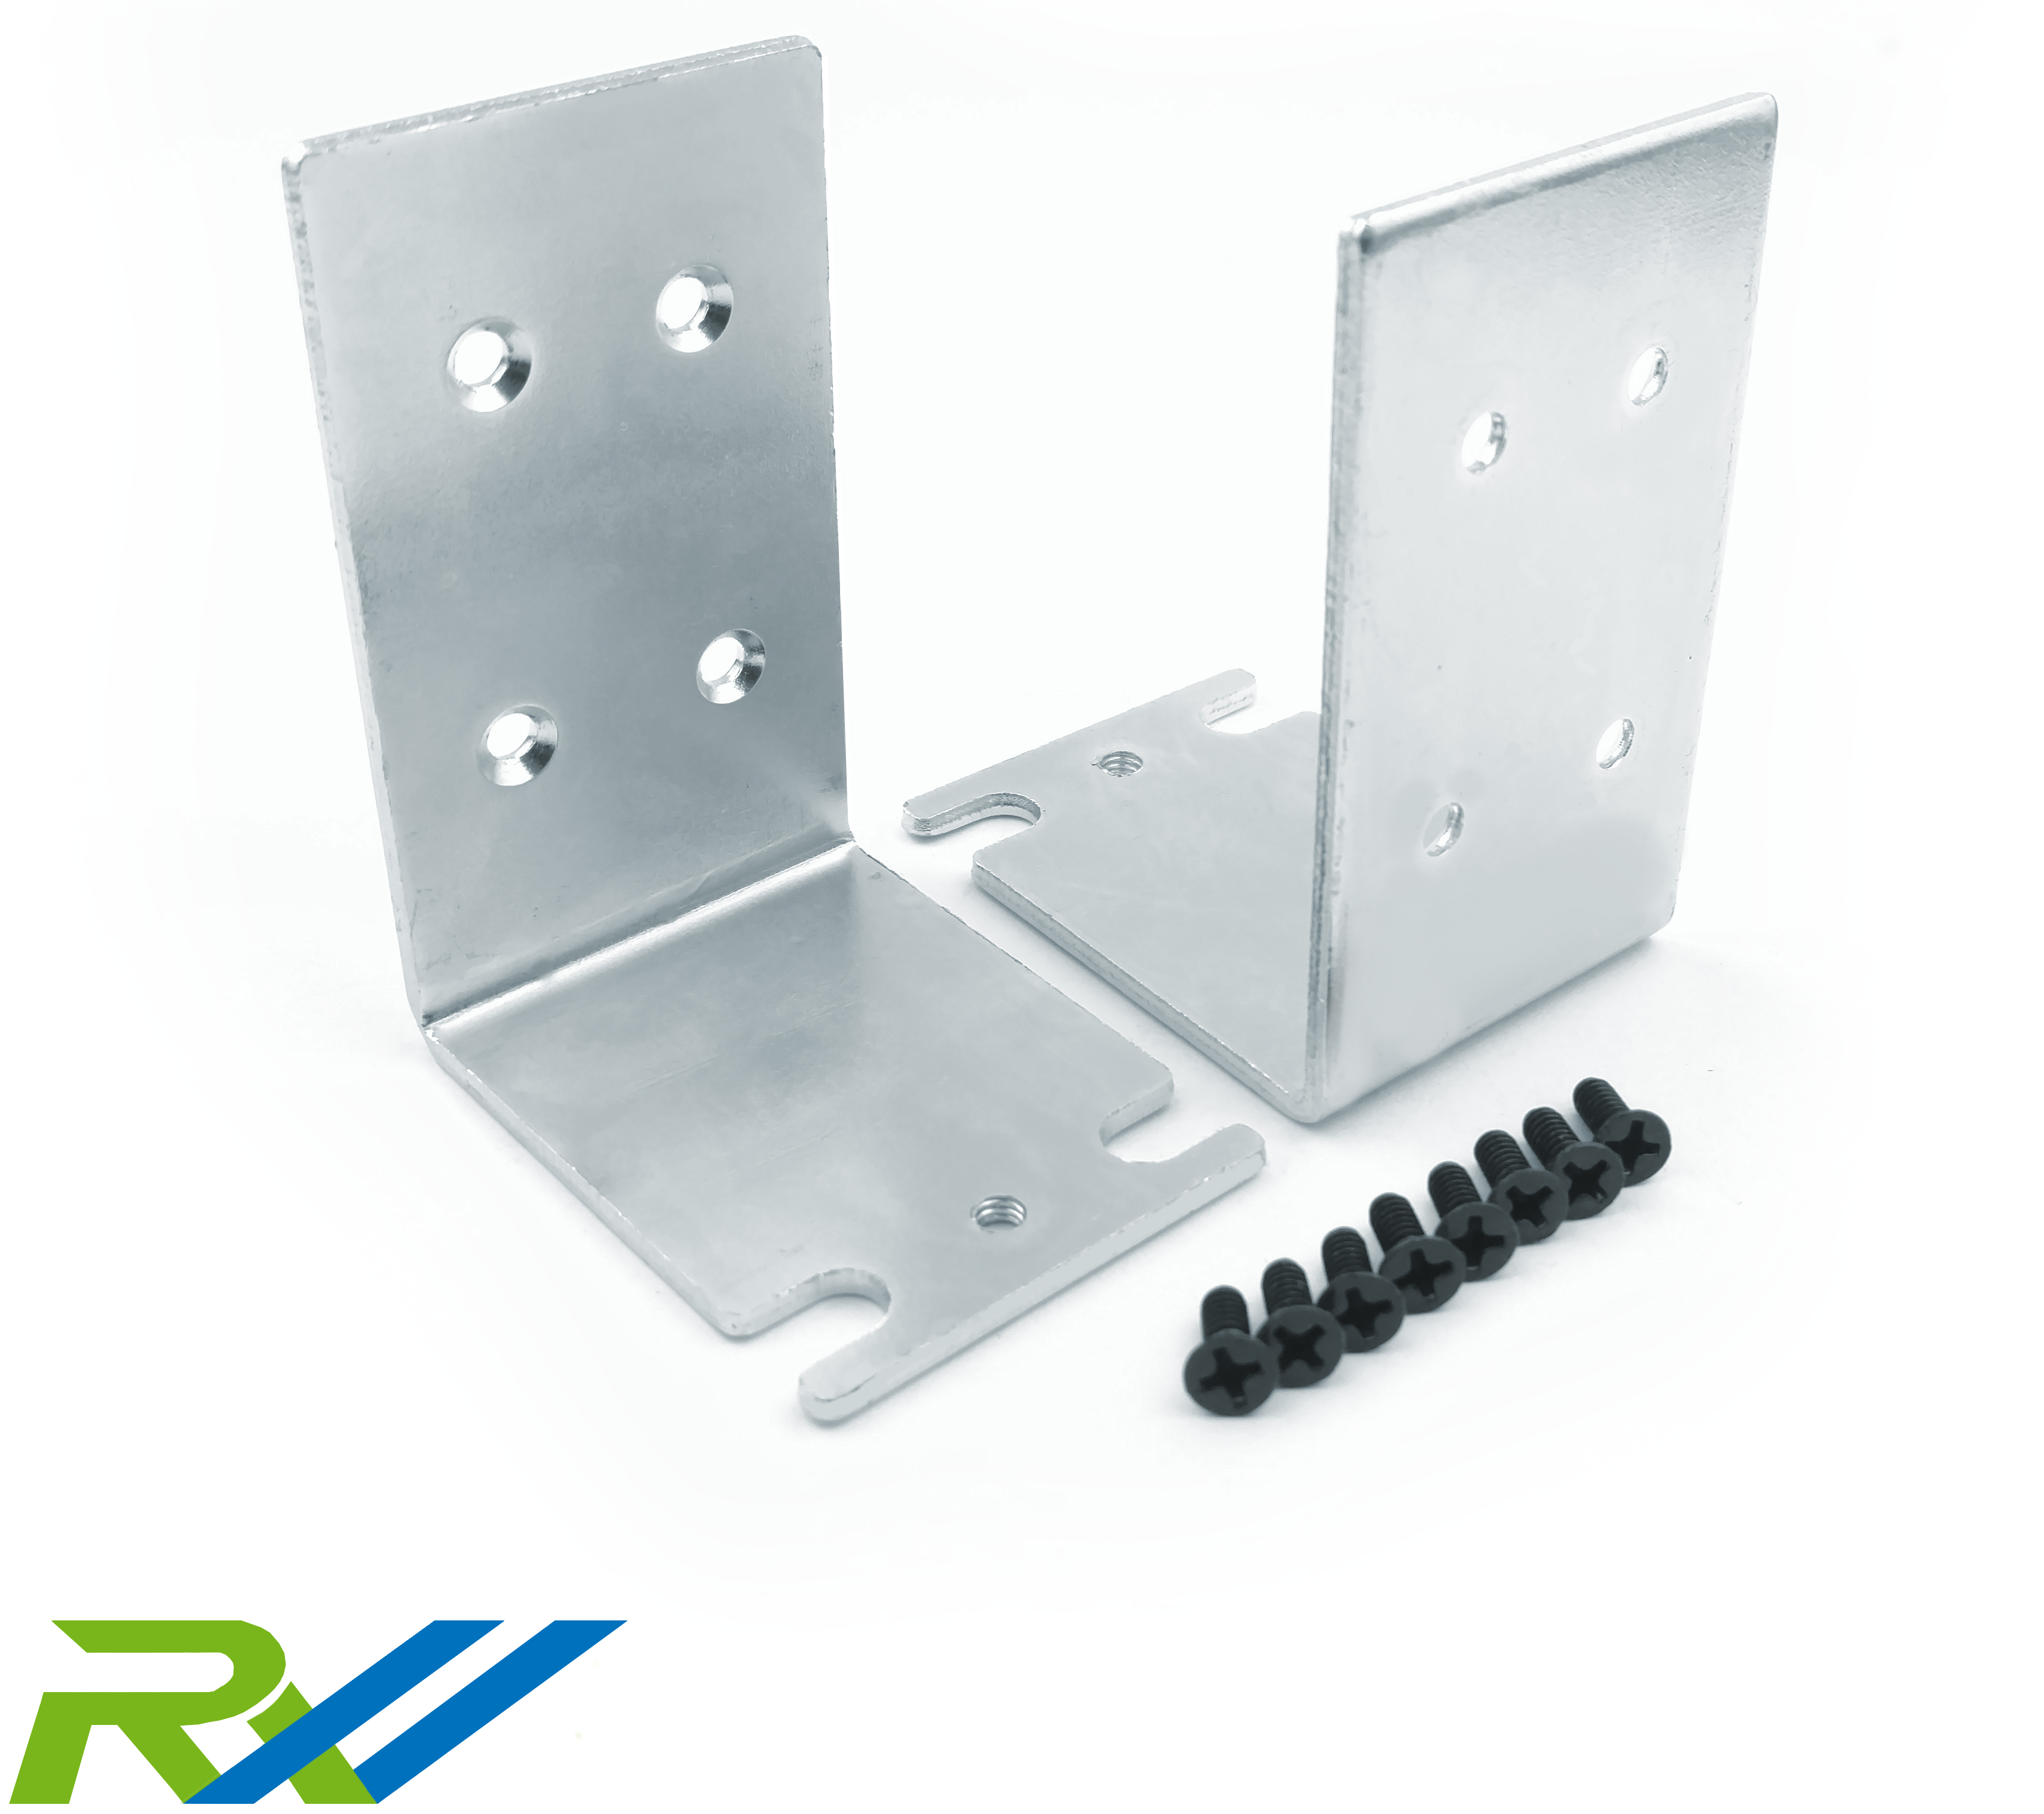 "19"" Rack Mount Kit for Cisco 4320 Routers"